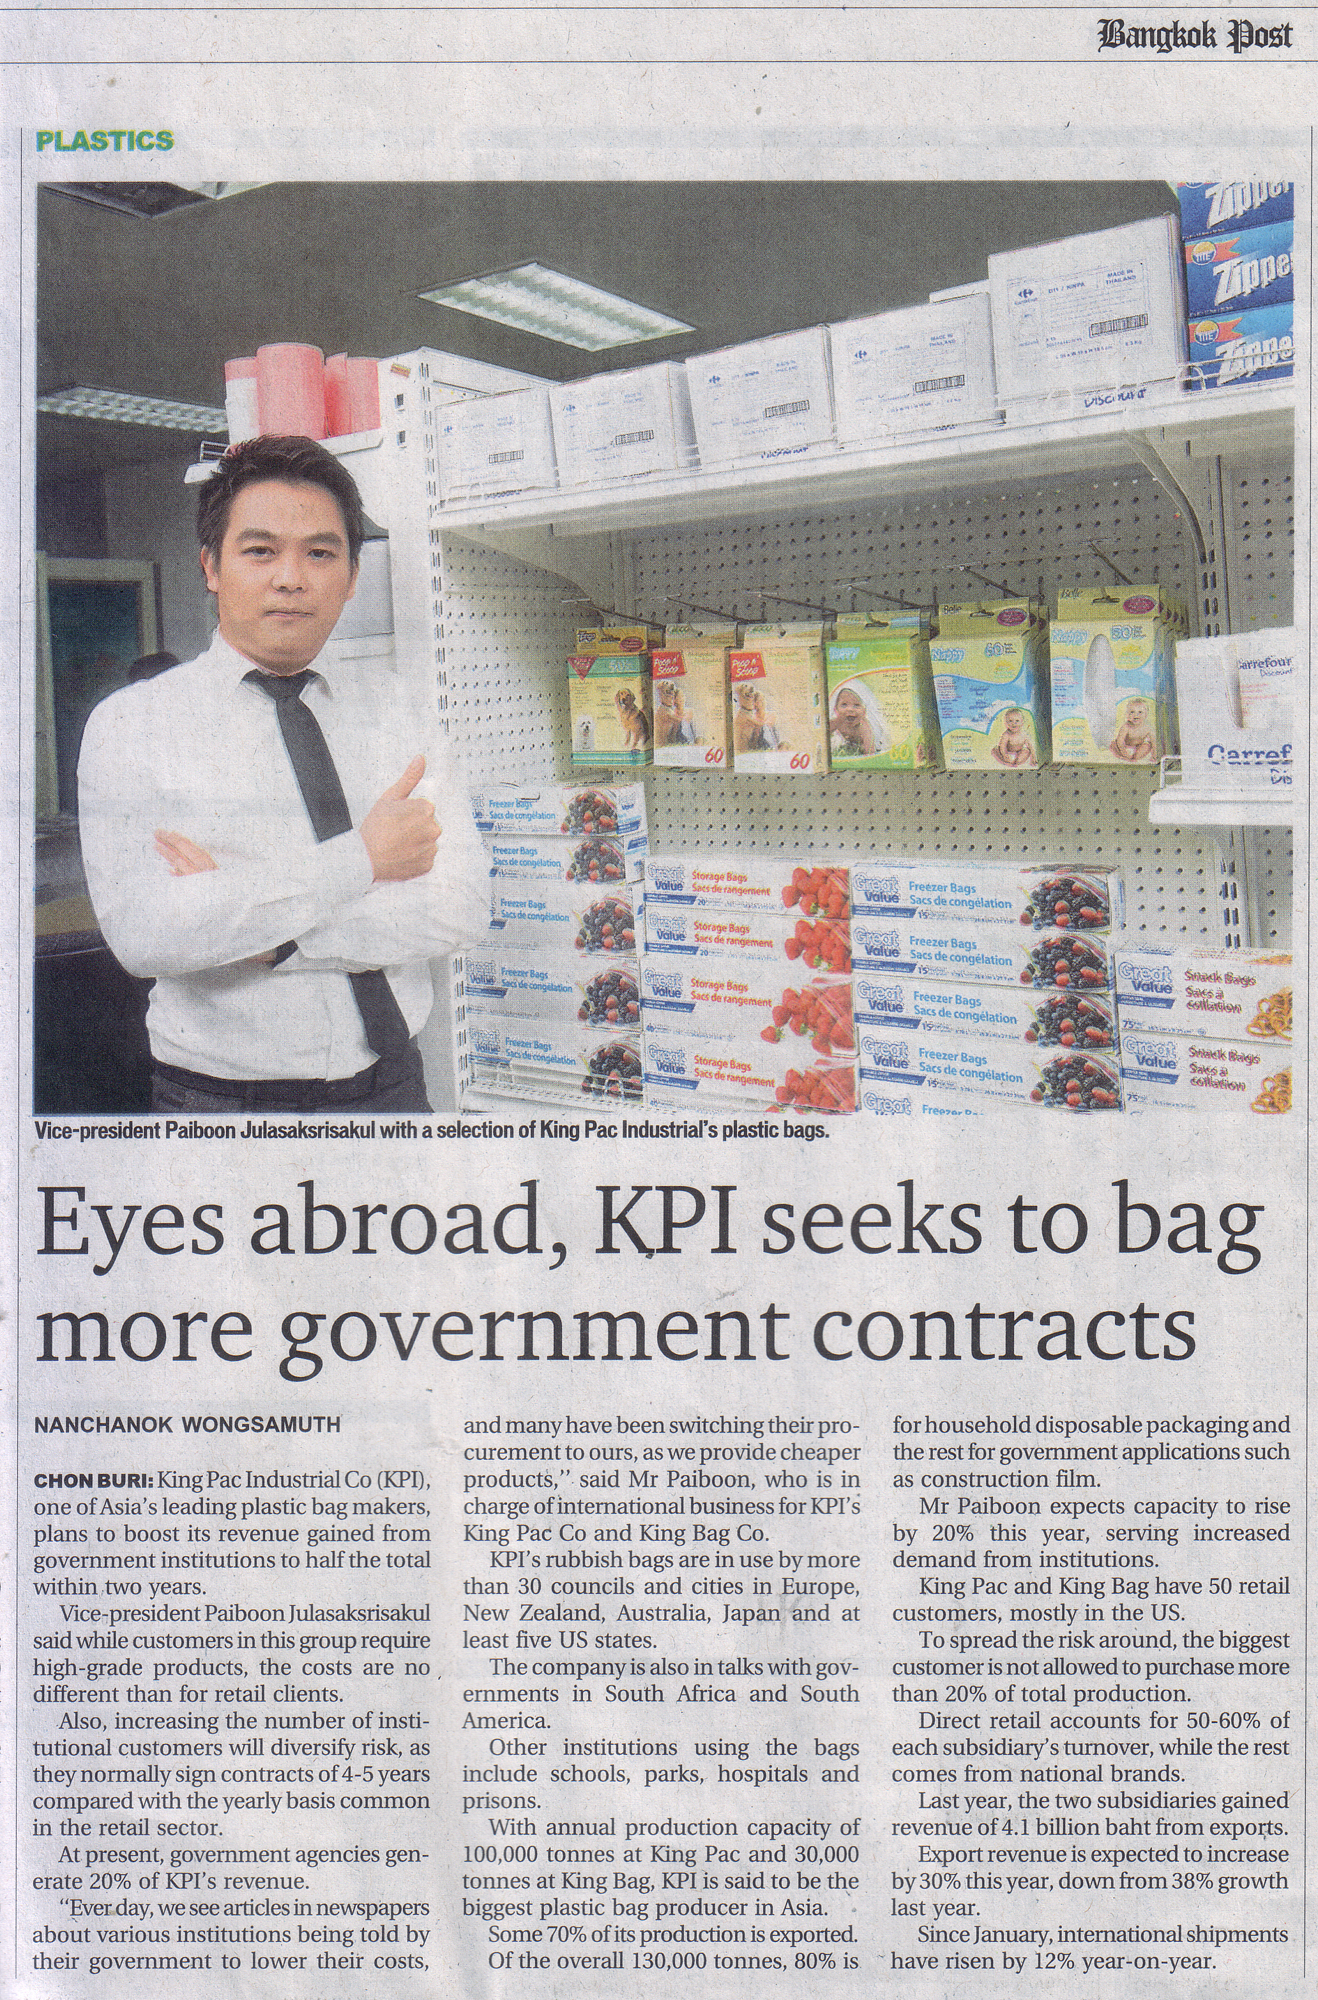 PJ paiboon julasaksrisakul king pac industrial bangkok post 11 may 2013